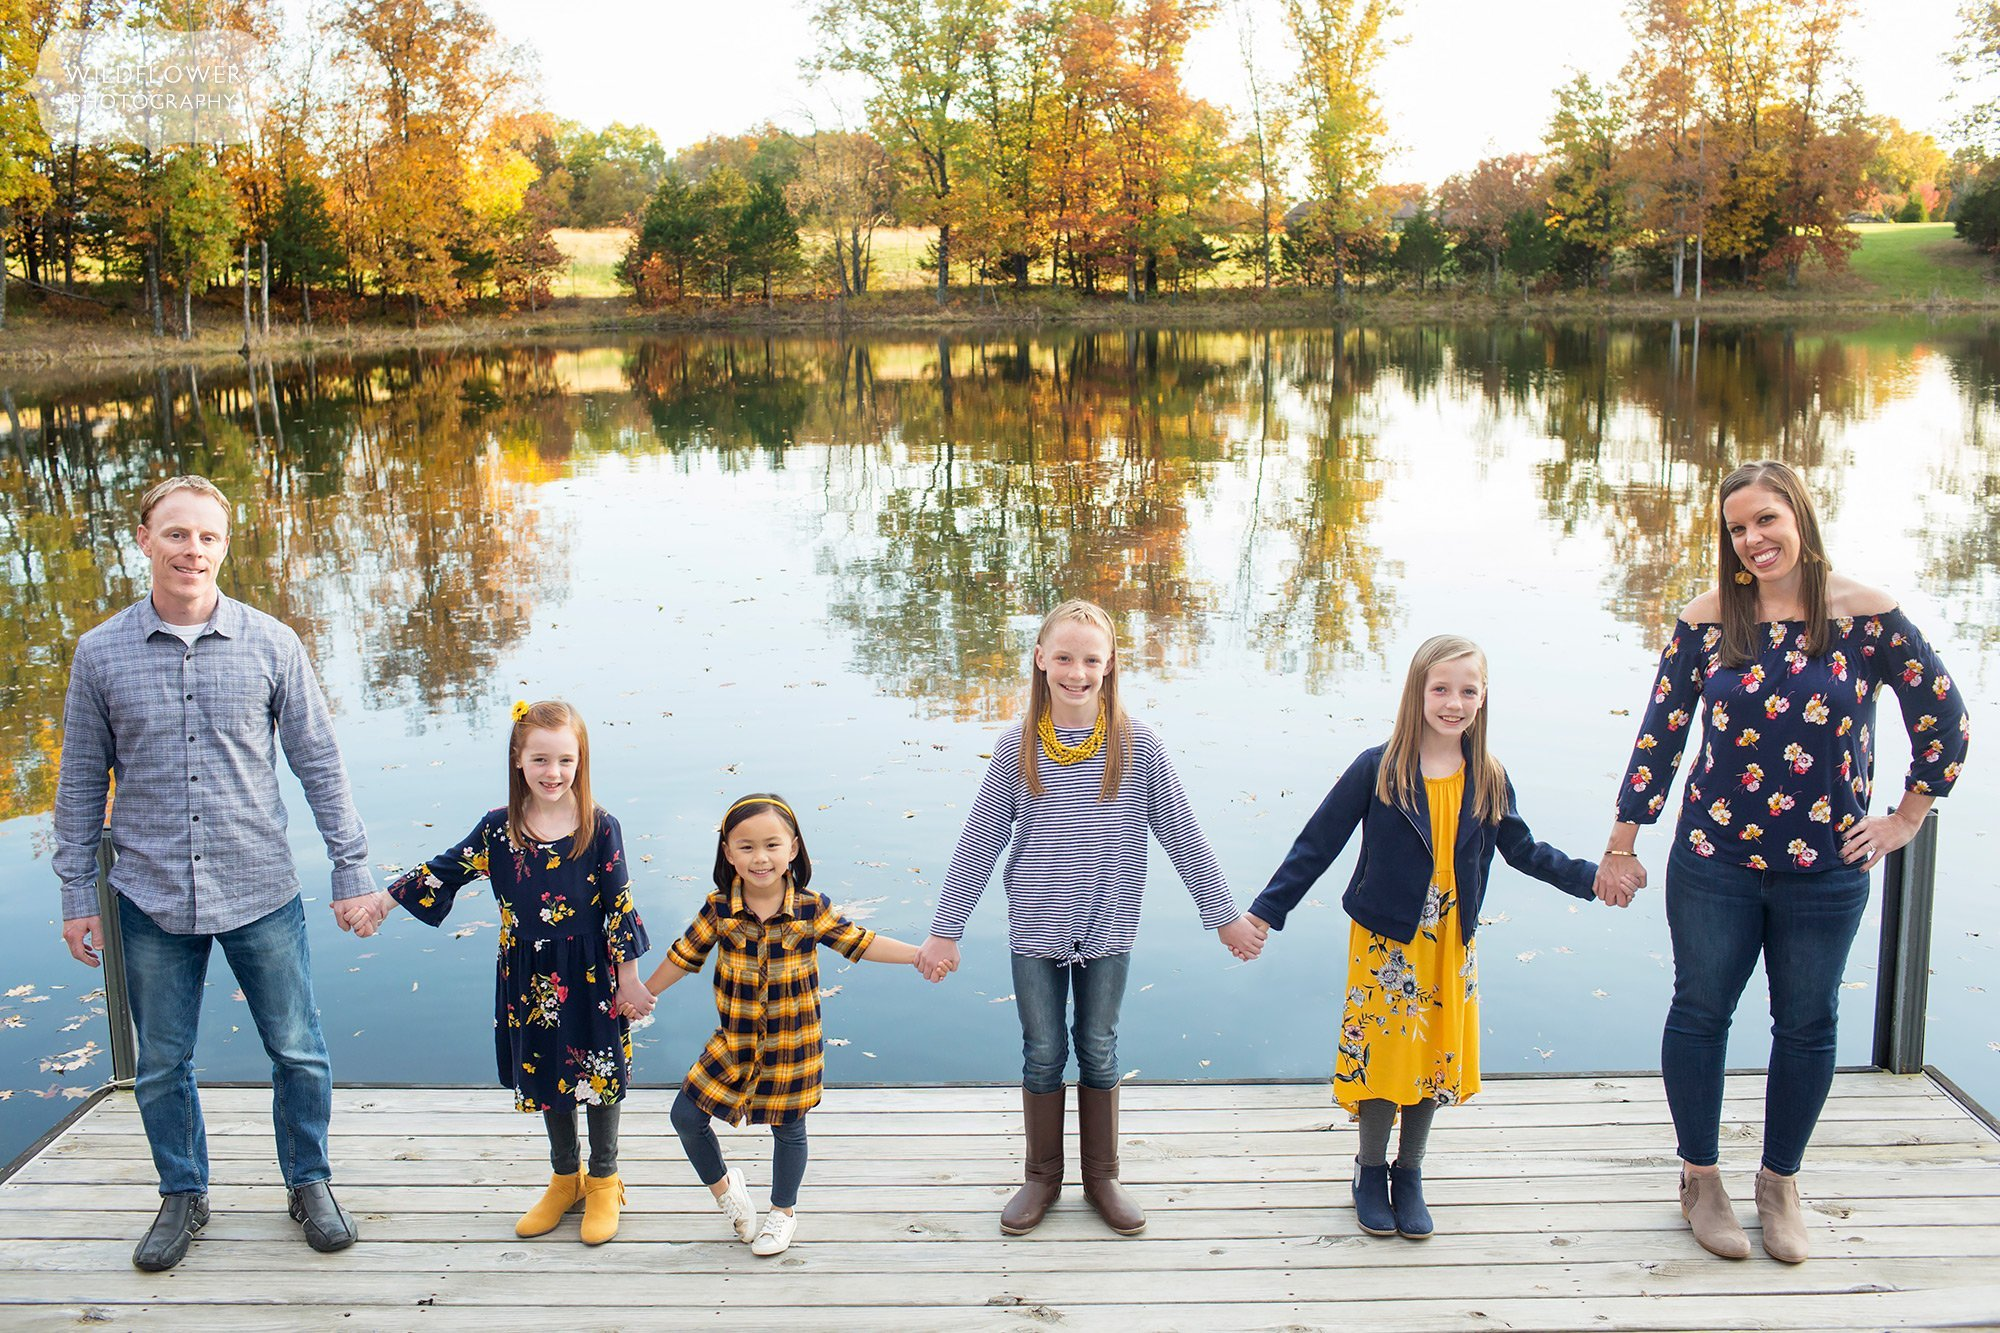 These fall family pictures in Columbia, MO have family line up on a dock with lake behind them.